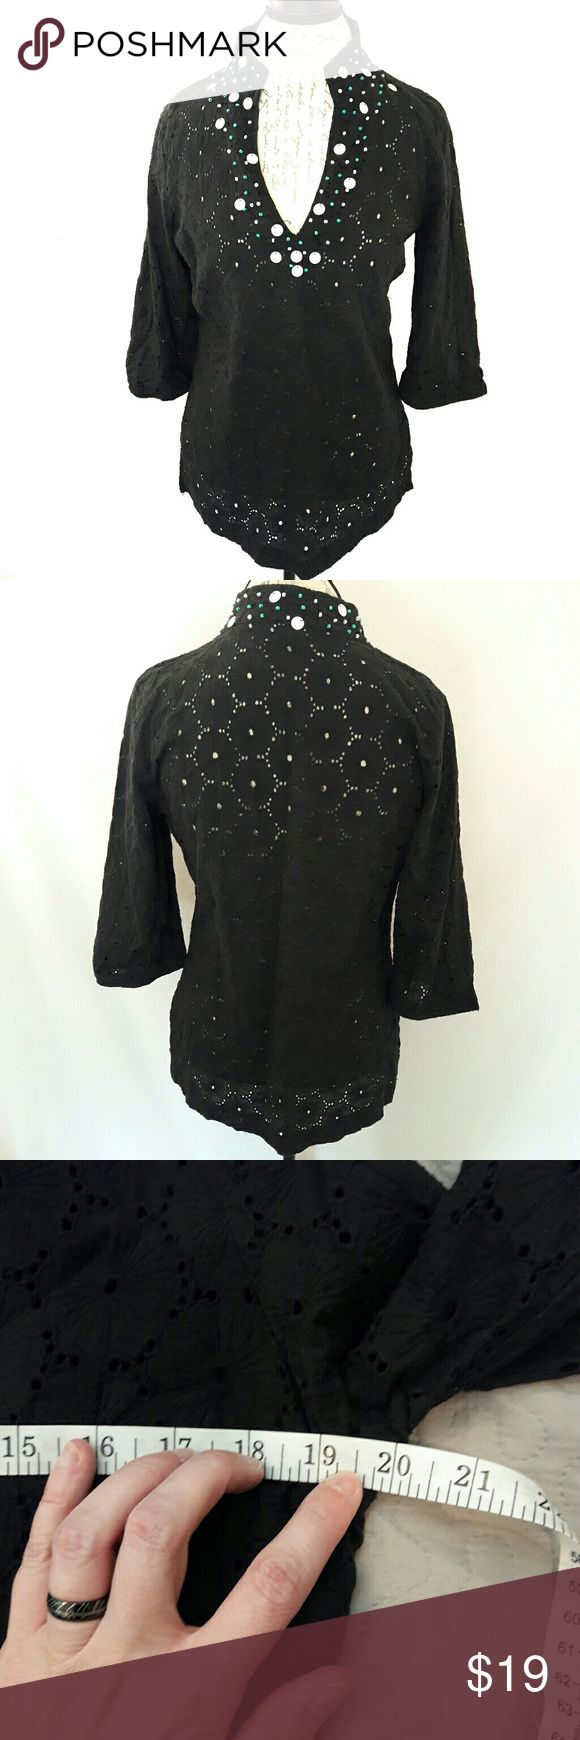 Beaded eyelet top by Kenar Beautiful long sleeve black eyelet beaded blouse. Has beads on the chest of the blouse. Also has a v-neckline. The beads are white and turquoise. Has a zipper on the side of the shirt. Measurements provided in pics above. From a smoke and pet free home. Fast shipping. Office - Vacation - Wedding - Fun - Dress up - date night - cruise - fall - winter *IF YOU LIKE MY ITEMS, please FOLLOW ME to see NEW ARRIVALS that are added weekly! * Kenar Tops